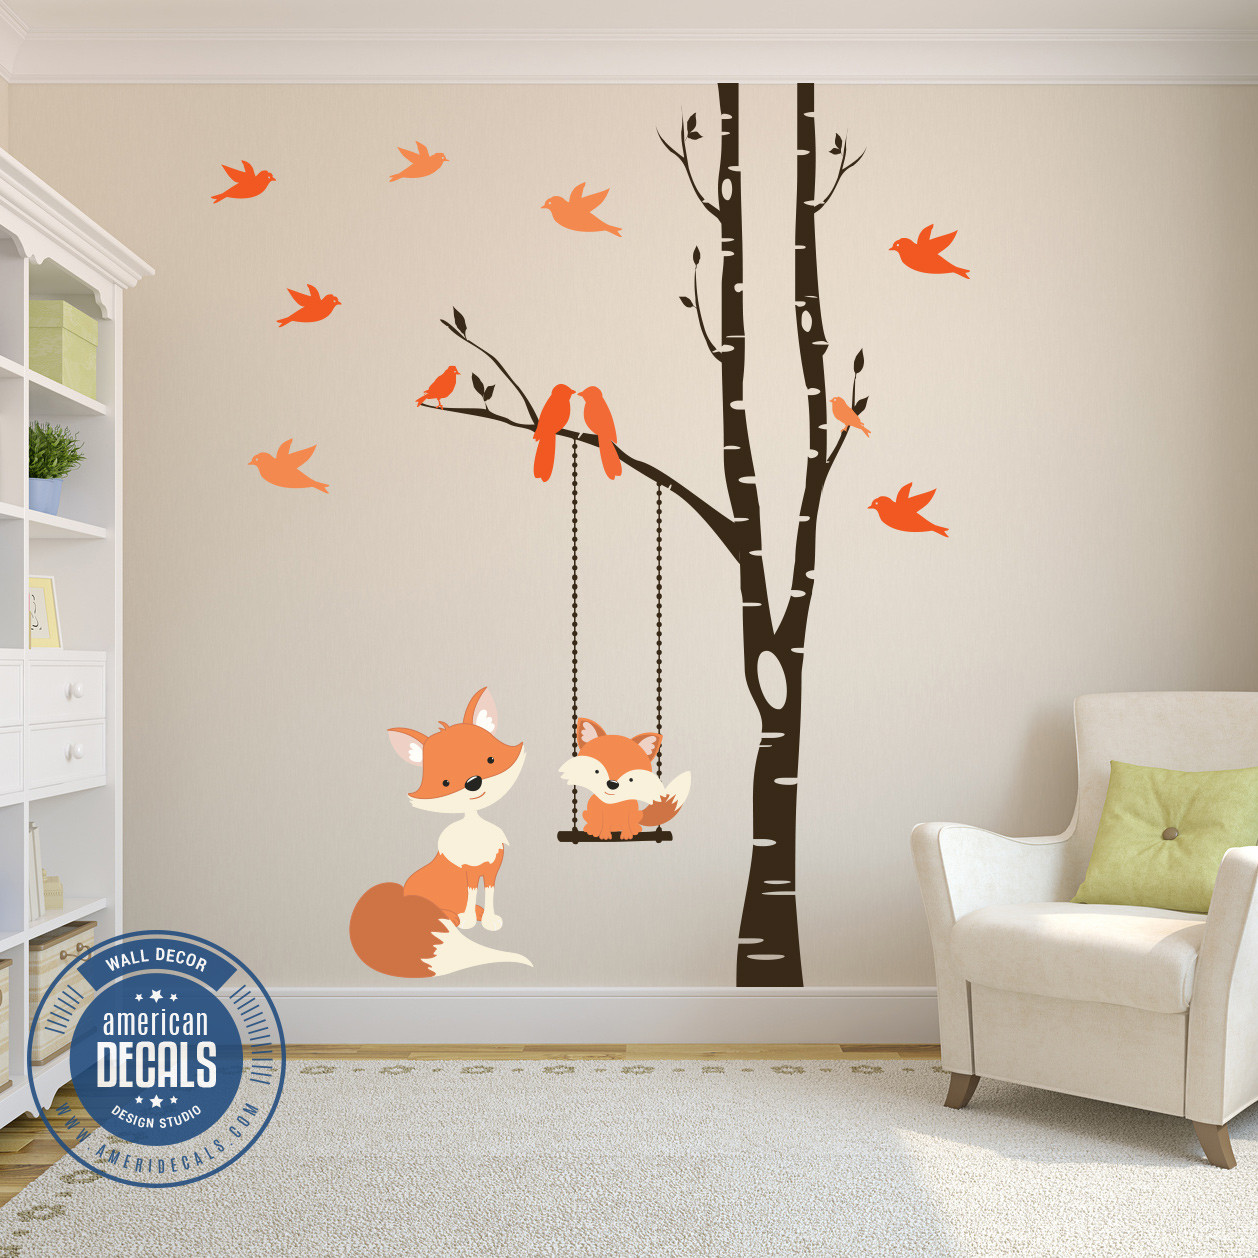 Exceptional Baby Fox Wall Decal Woodland Nursery Wall Decal Baby Fox Swing Trees River Birch Woodland Forest Birch Tree Wall Stickers Australia Birch Tree Wall Decal Nursery houzz 01 Birch Tree Wall Decal